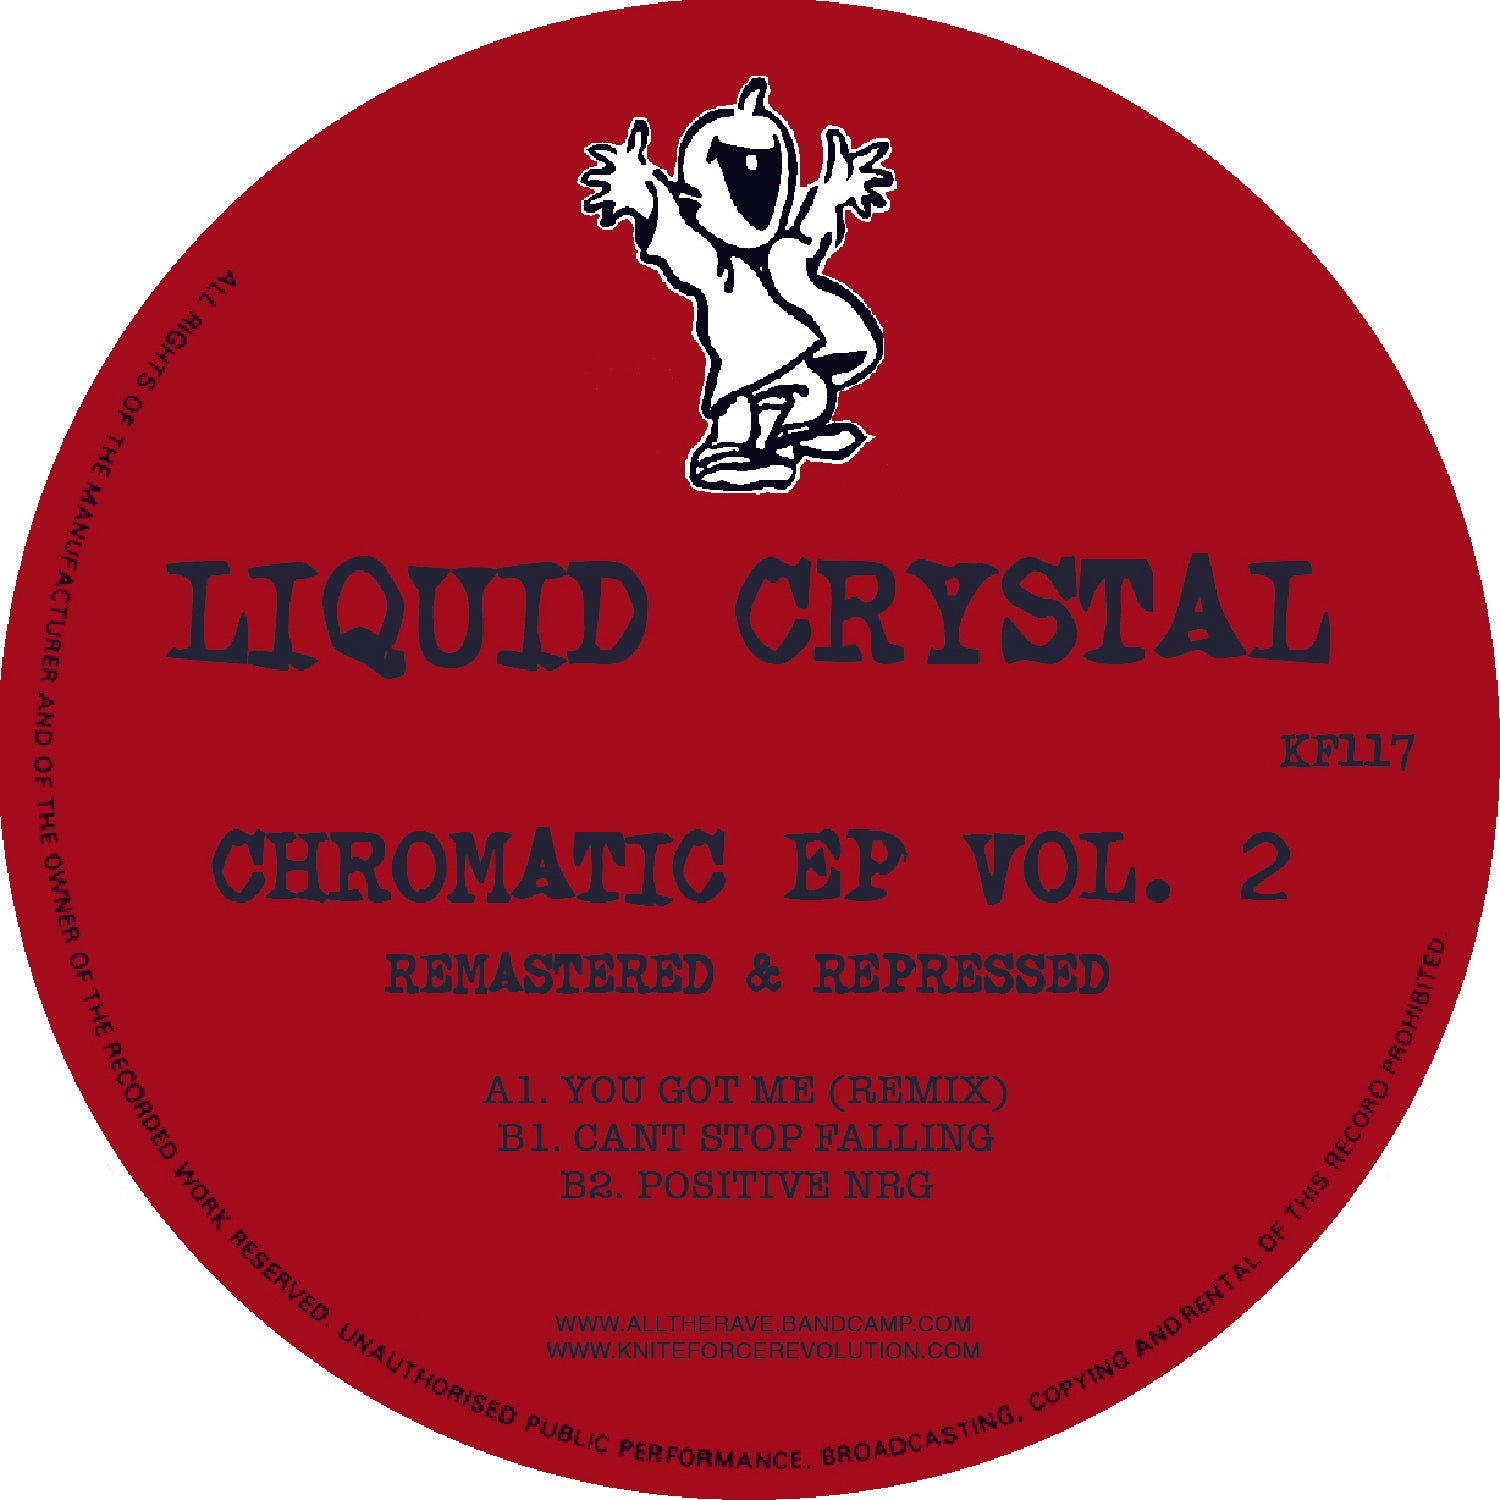 Liquid Crystal 'Chromatic EP Vol. 2 Remastered' 12""